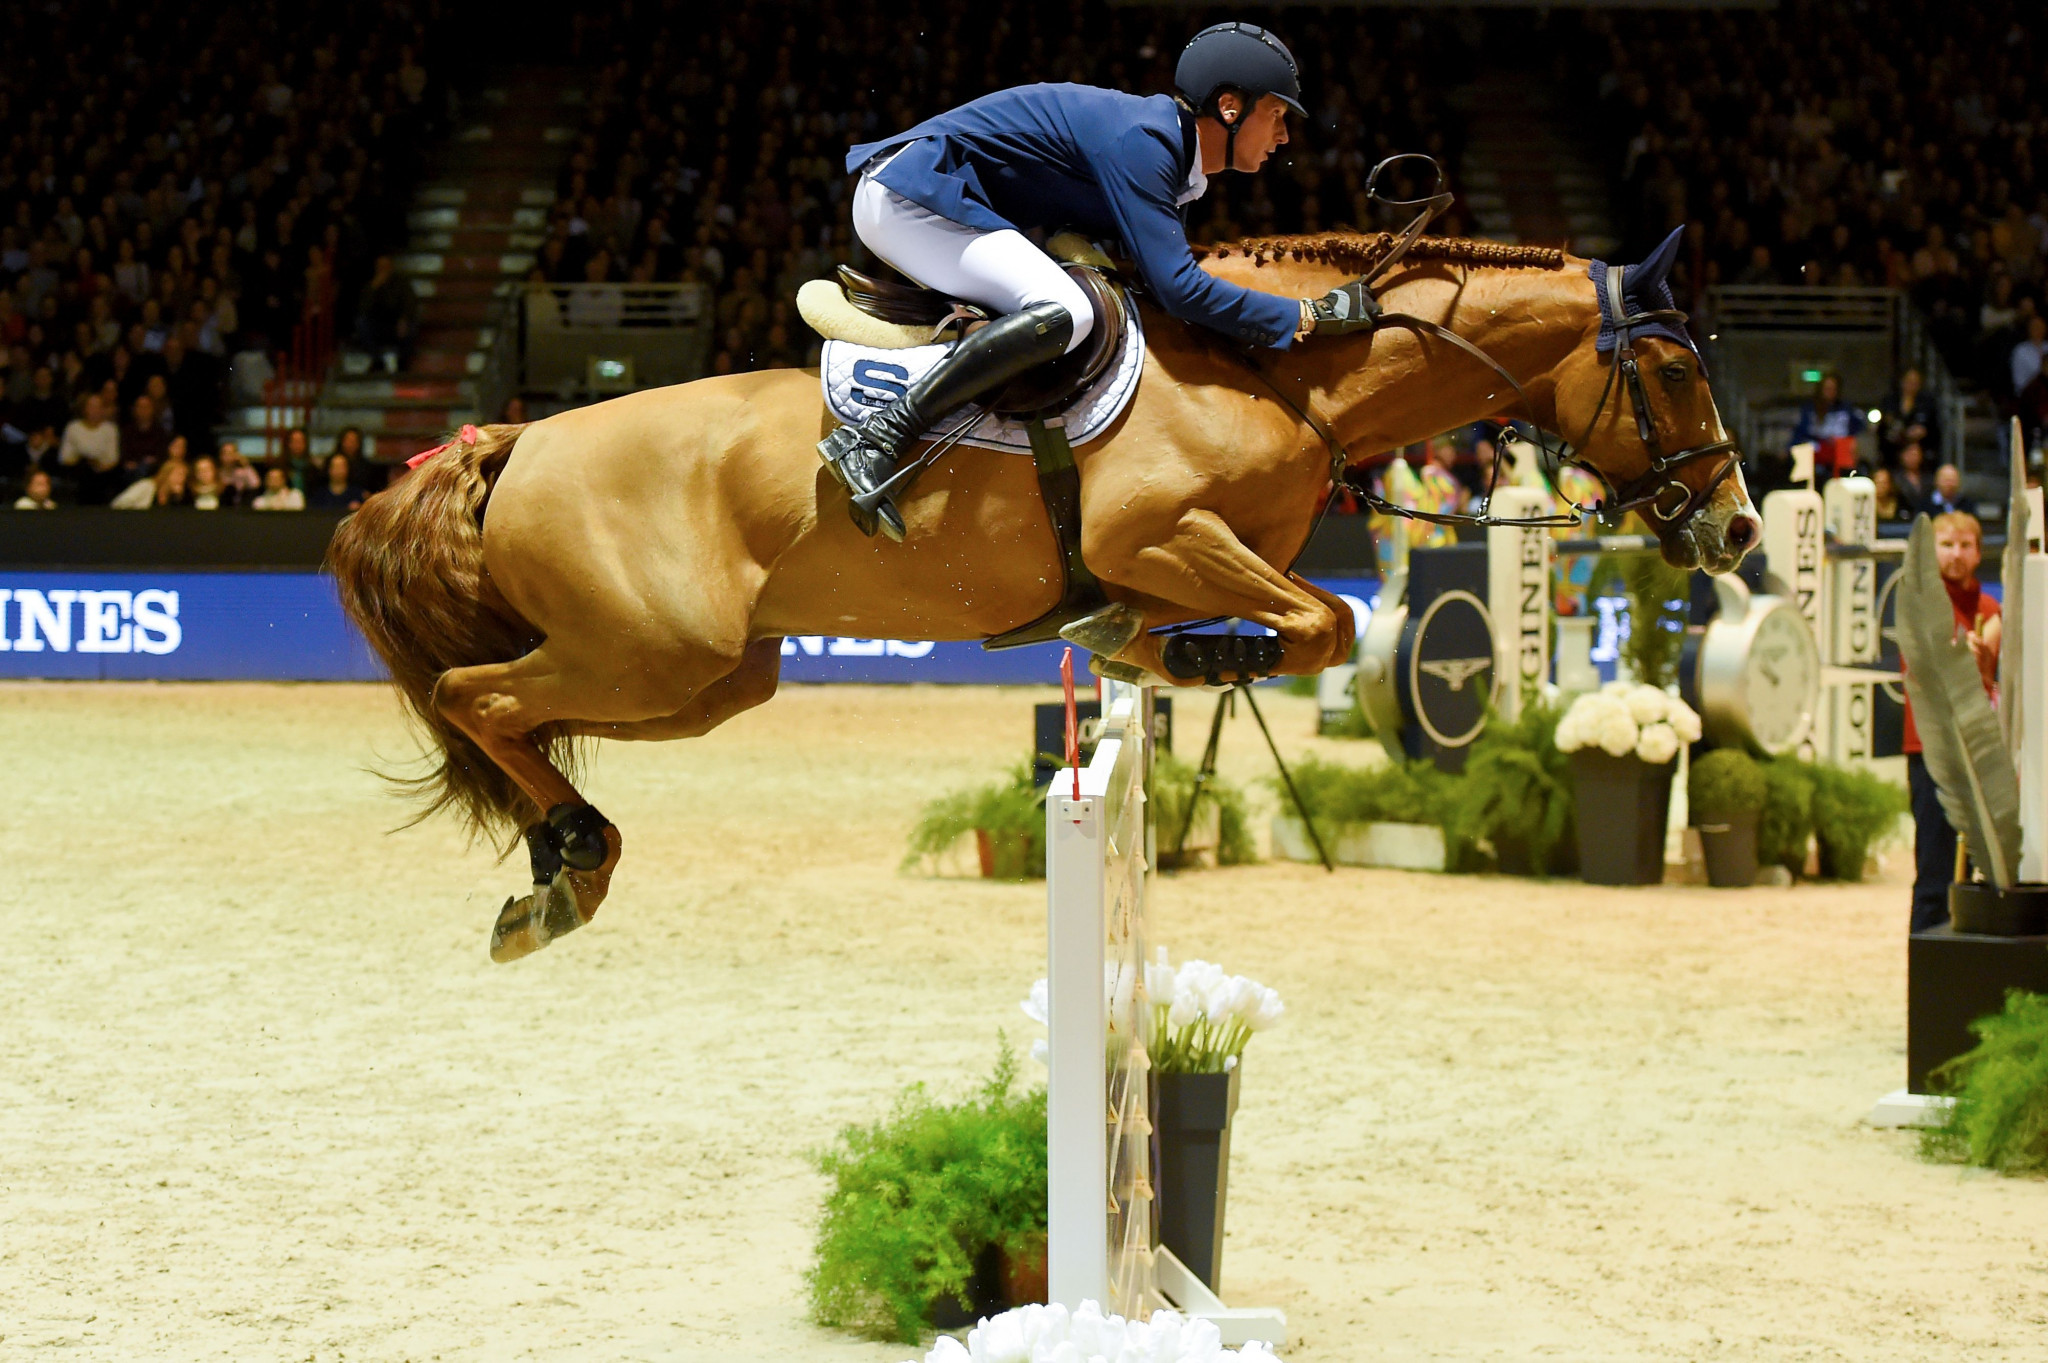 FEI Jumping and Dressage World Cup seasons to conclude in Gothenburg